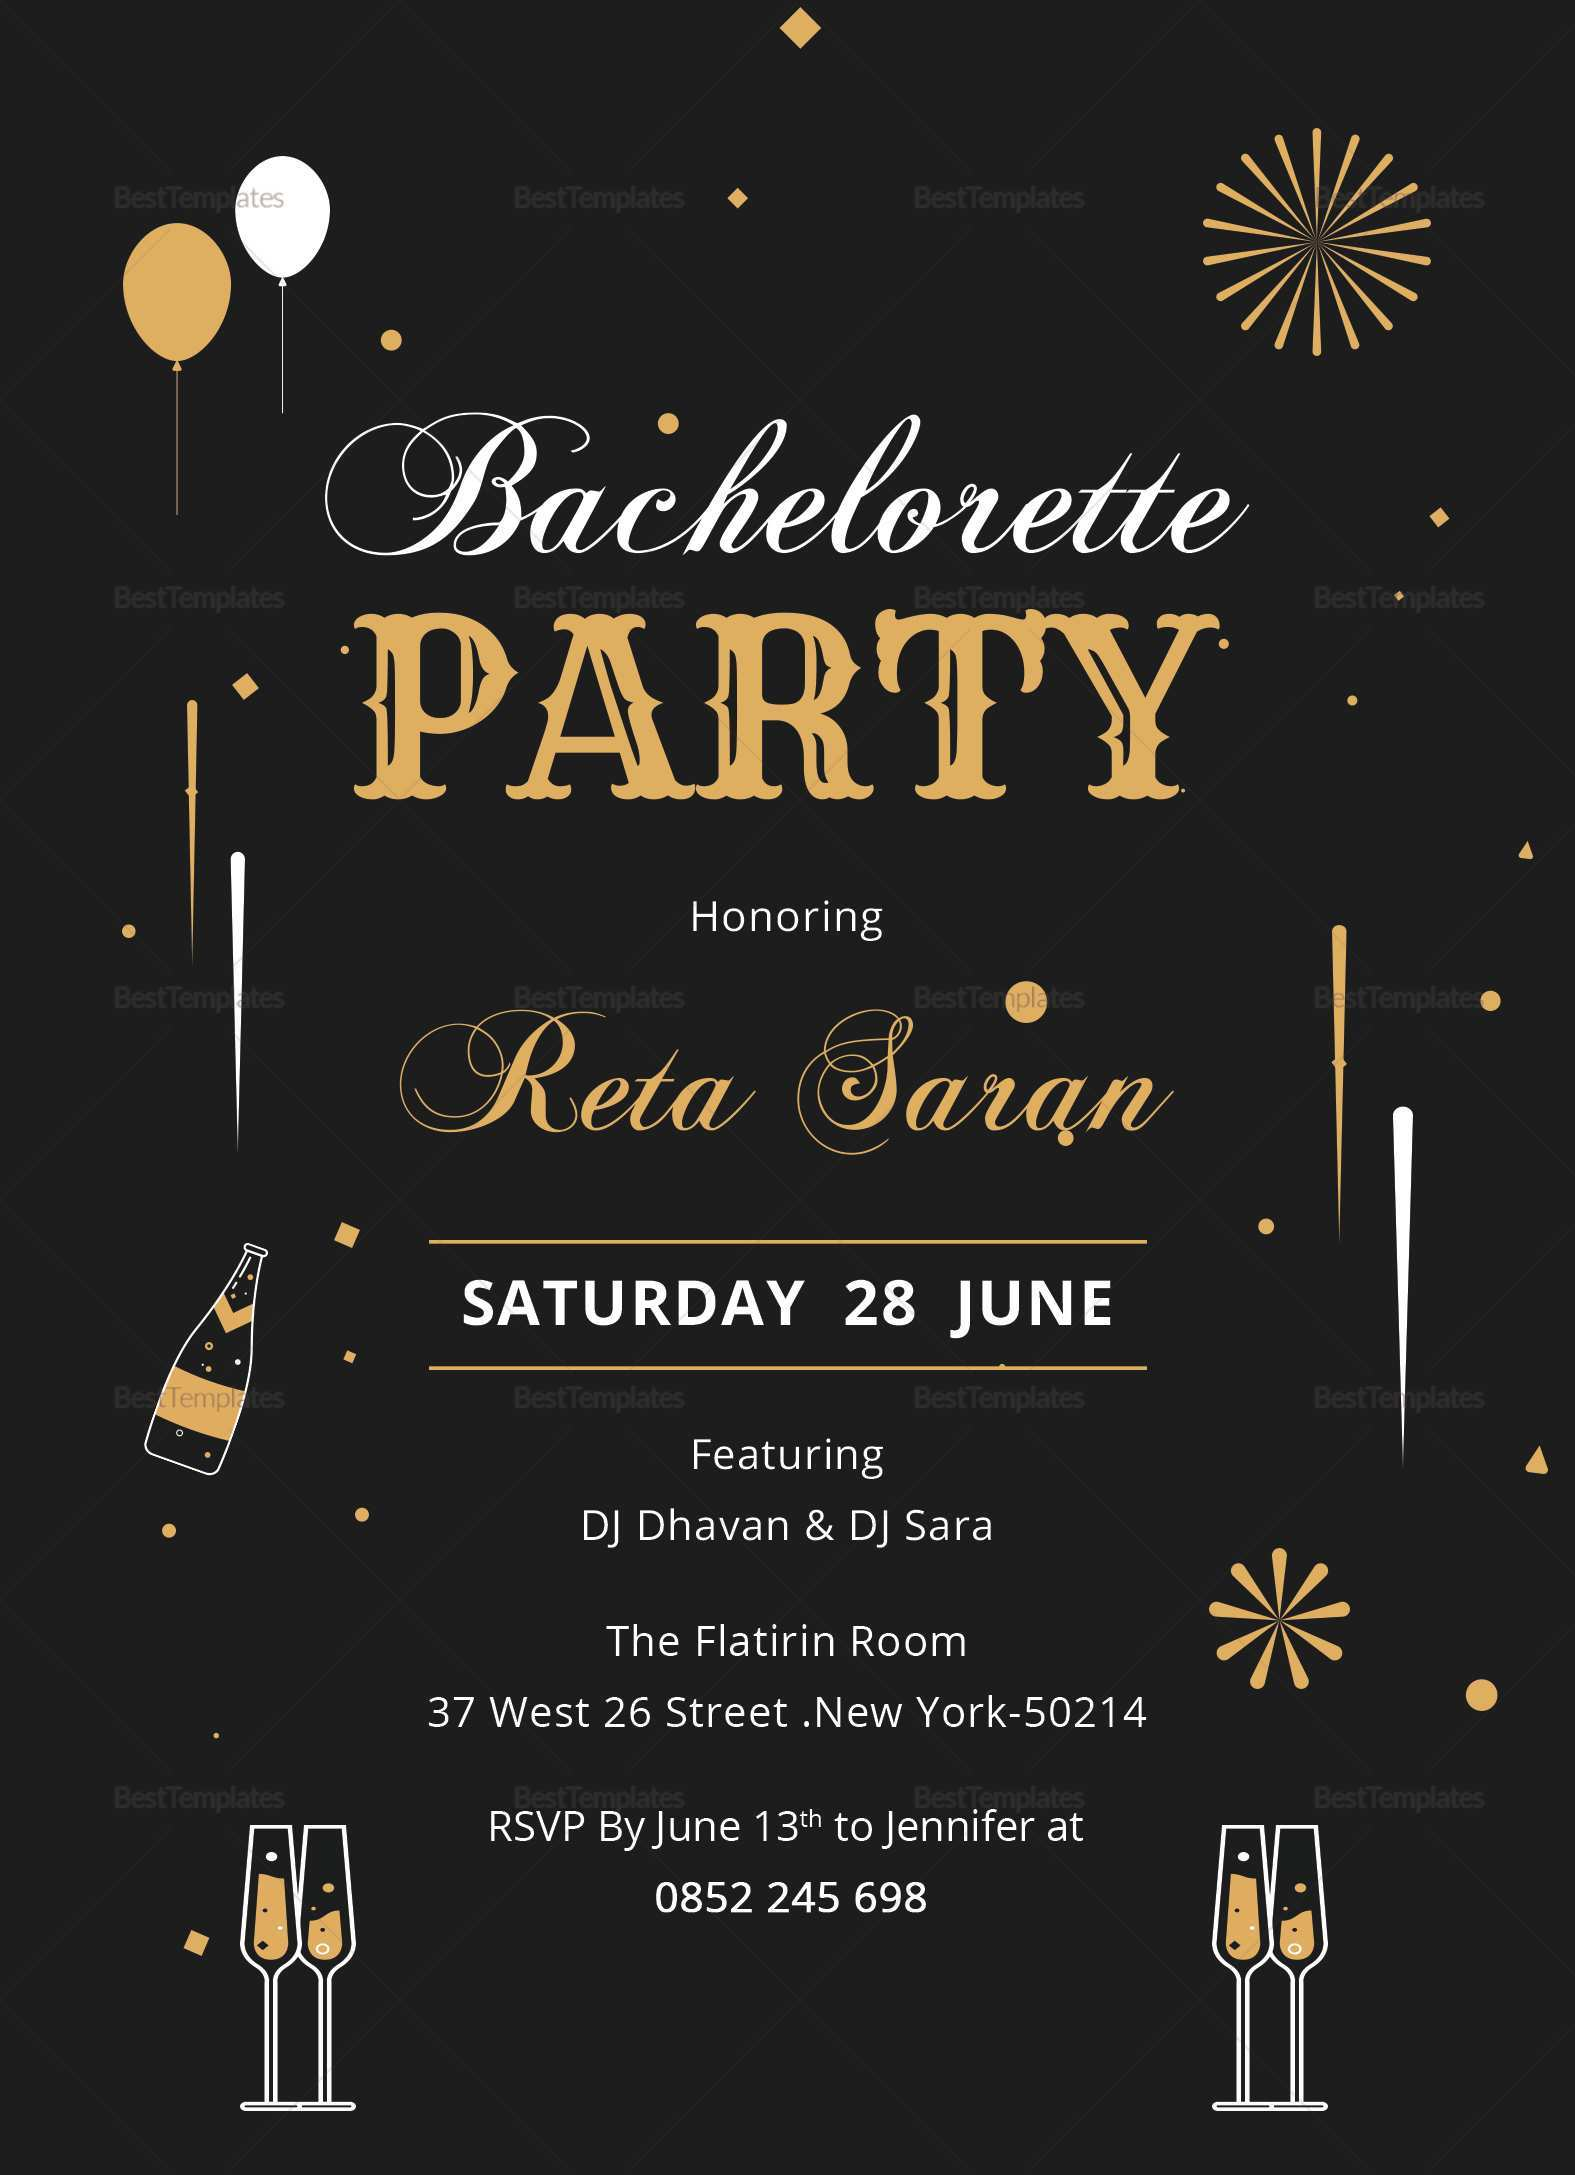 Bachelorette Party Invitation Template Free from legaldbol.com